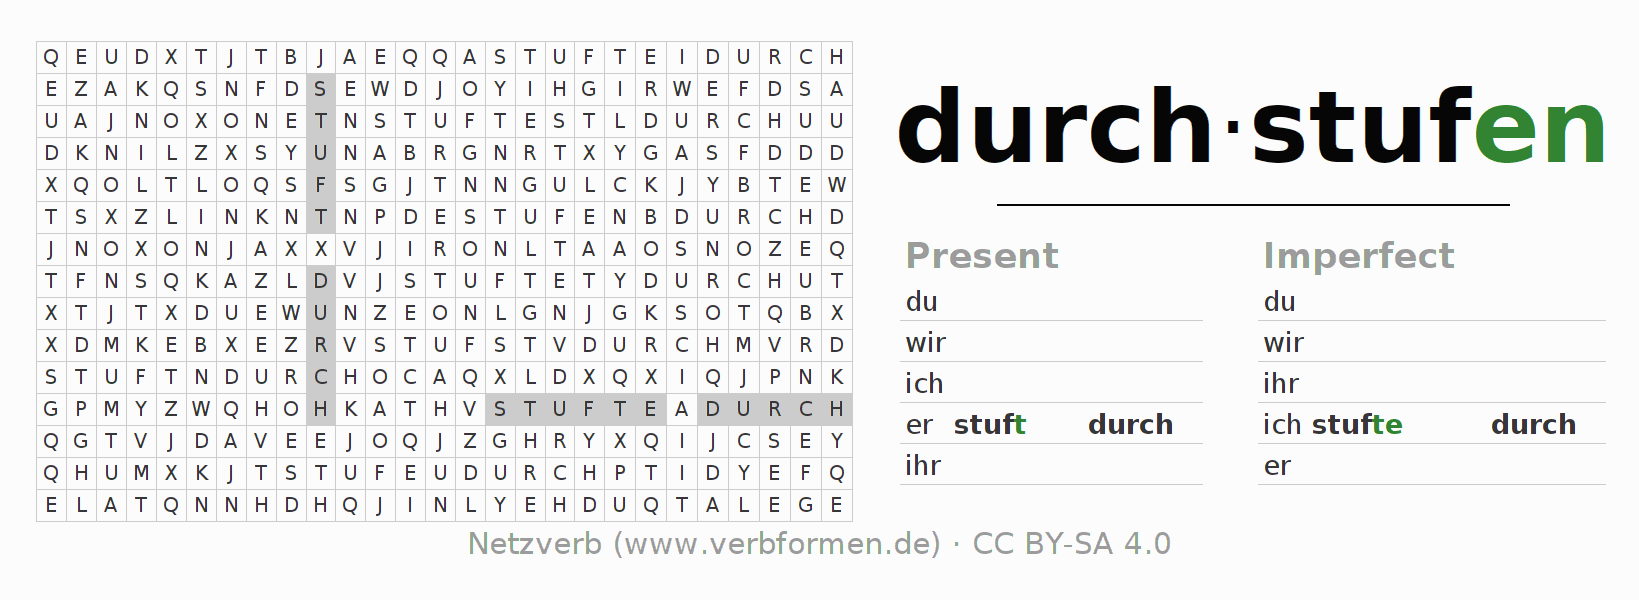 Word search puzzle for the conjugation of the verb durchstufen